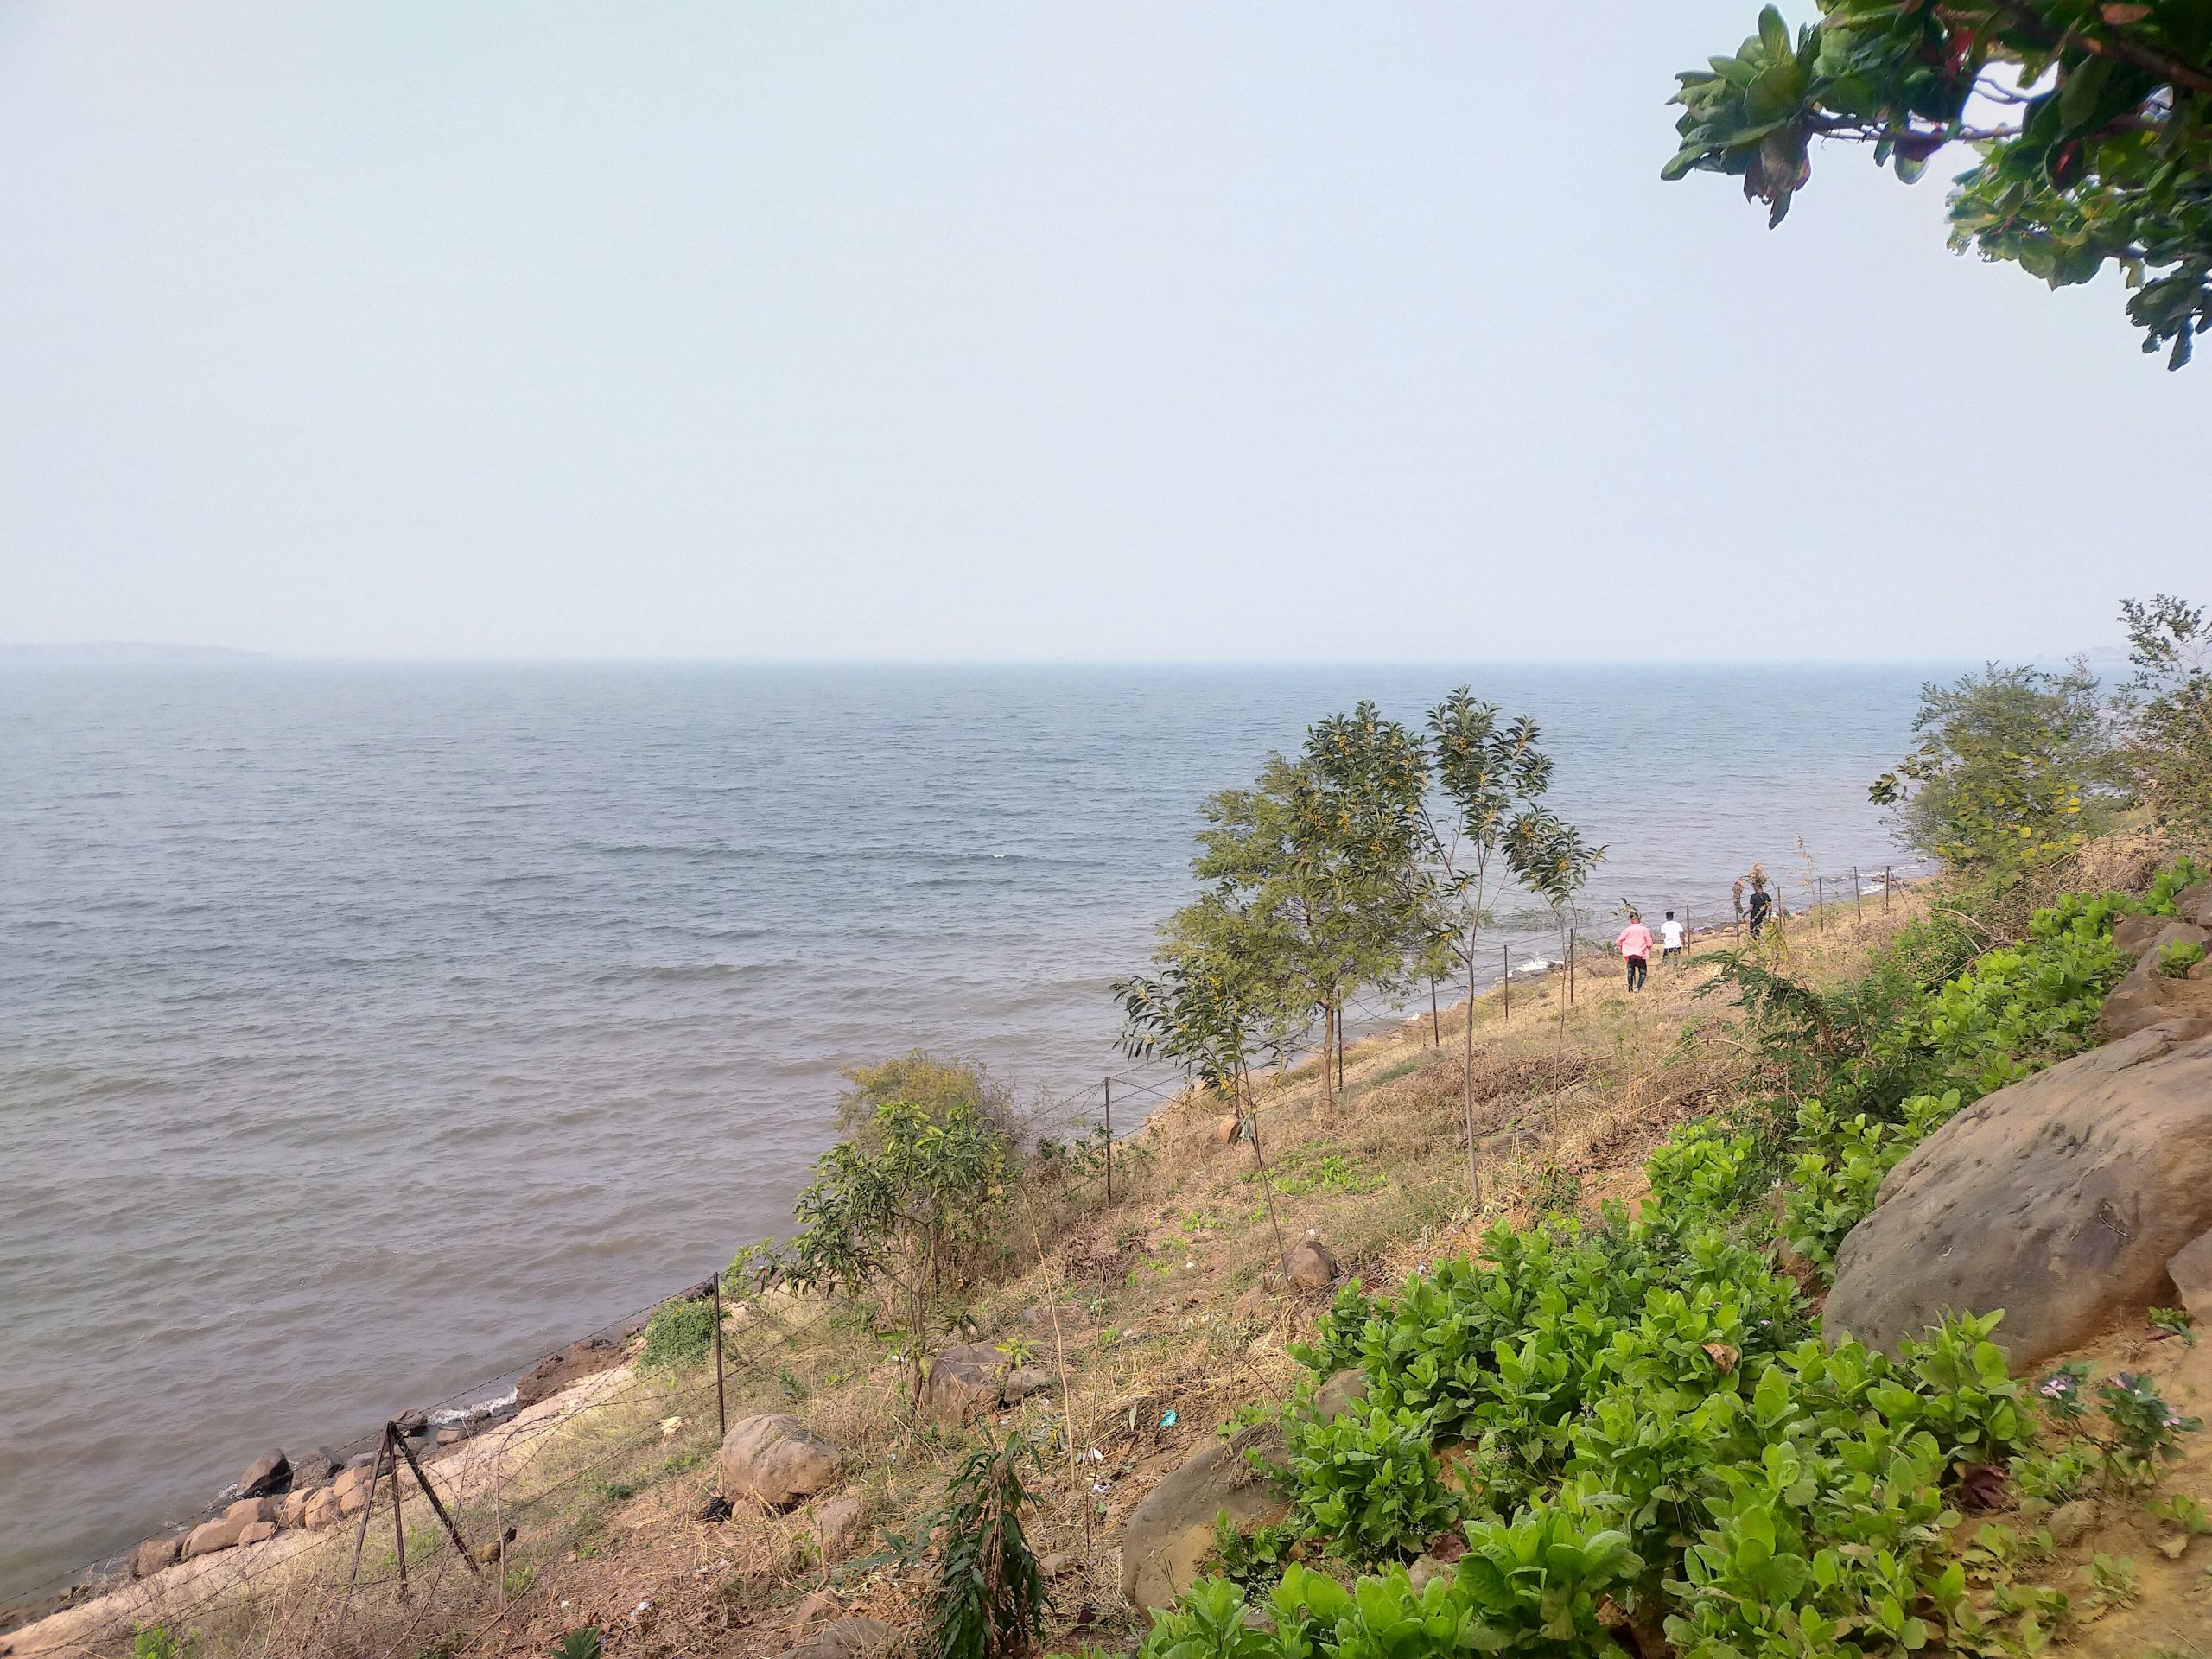 View of a beautiful beach side